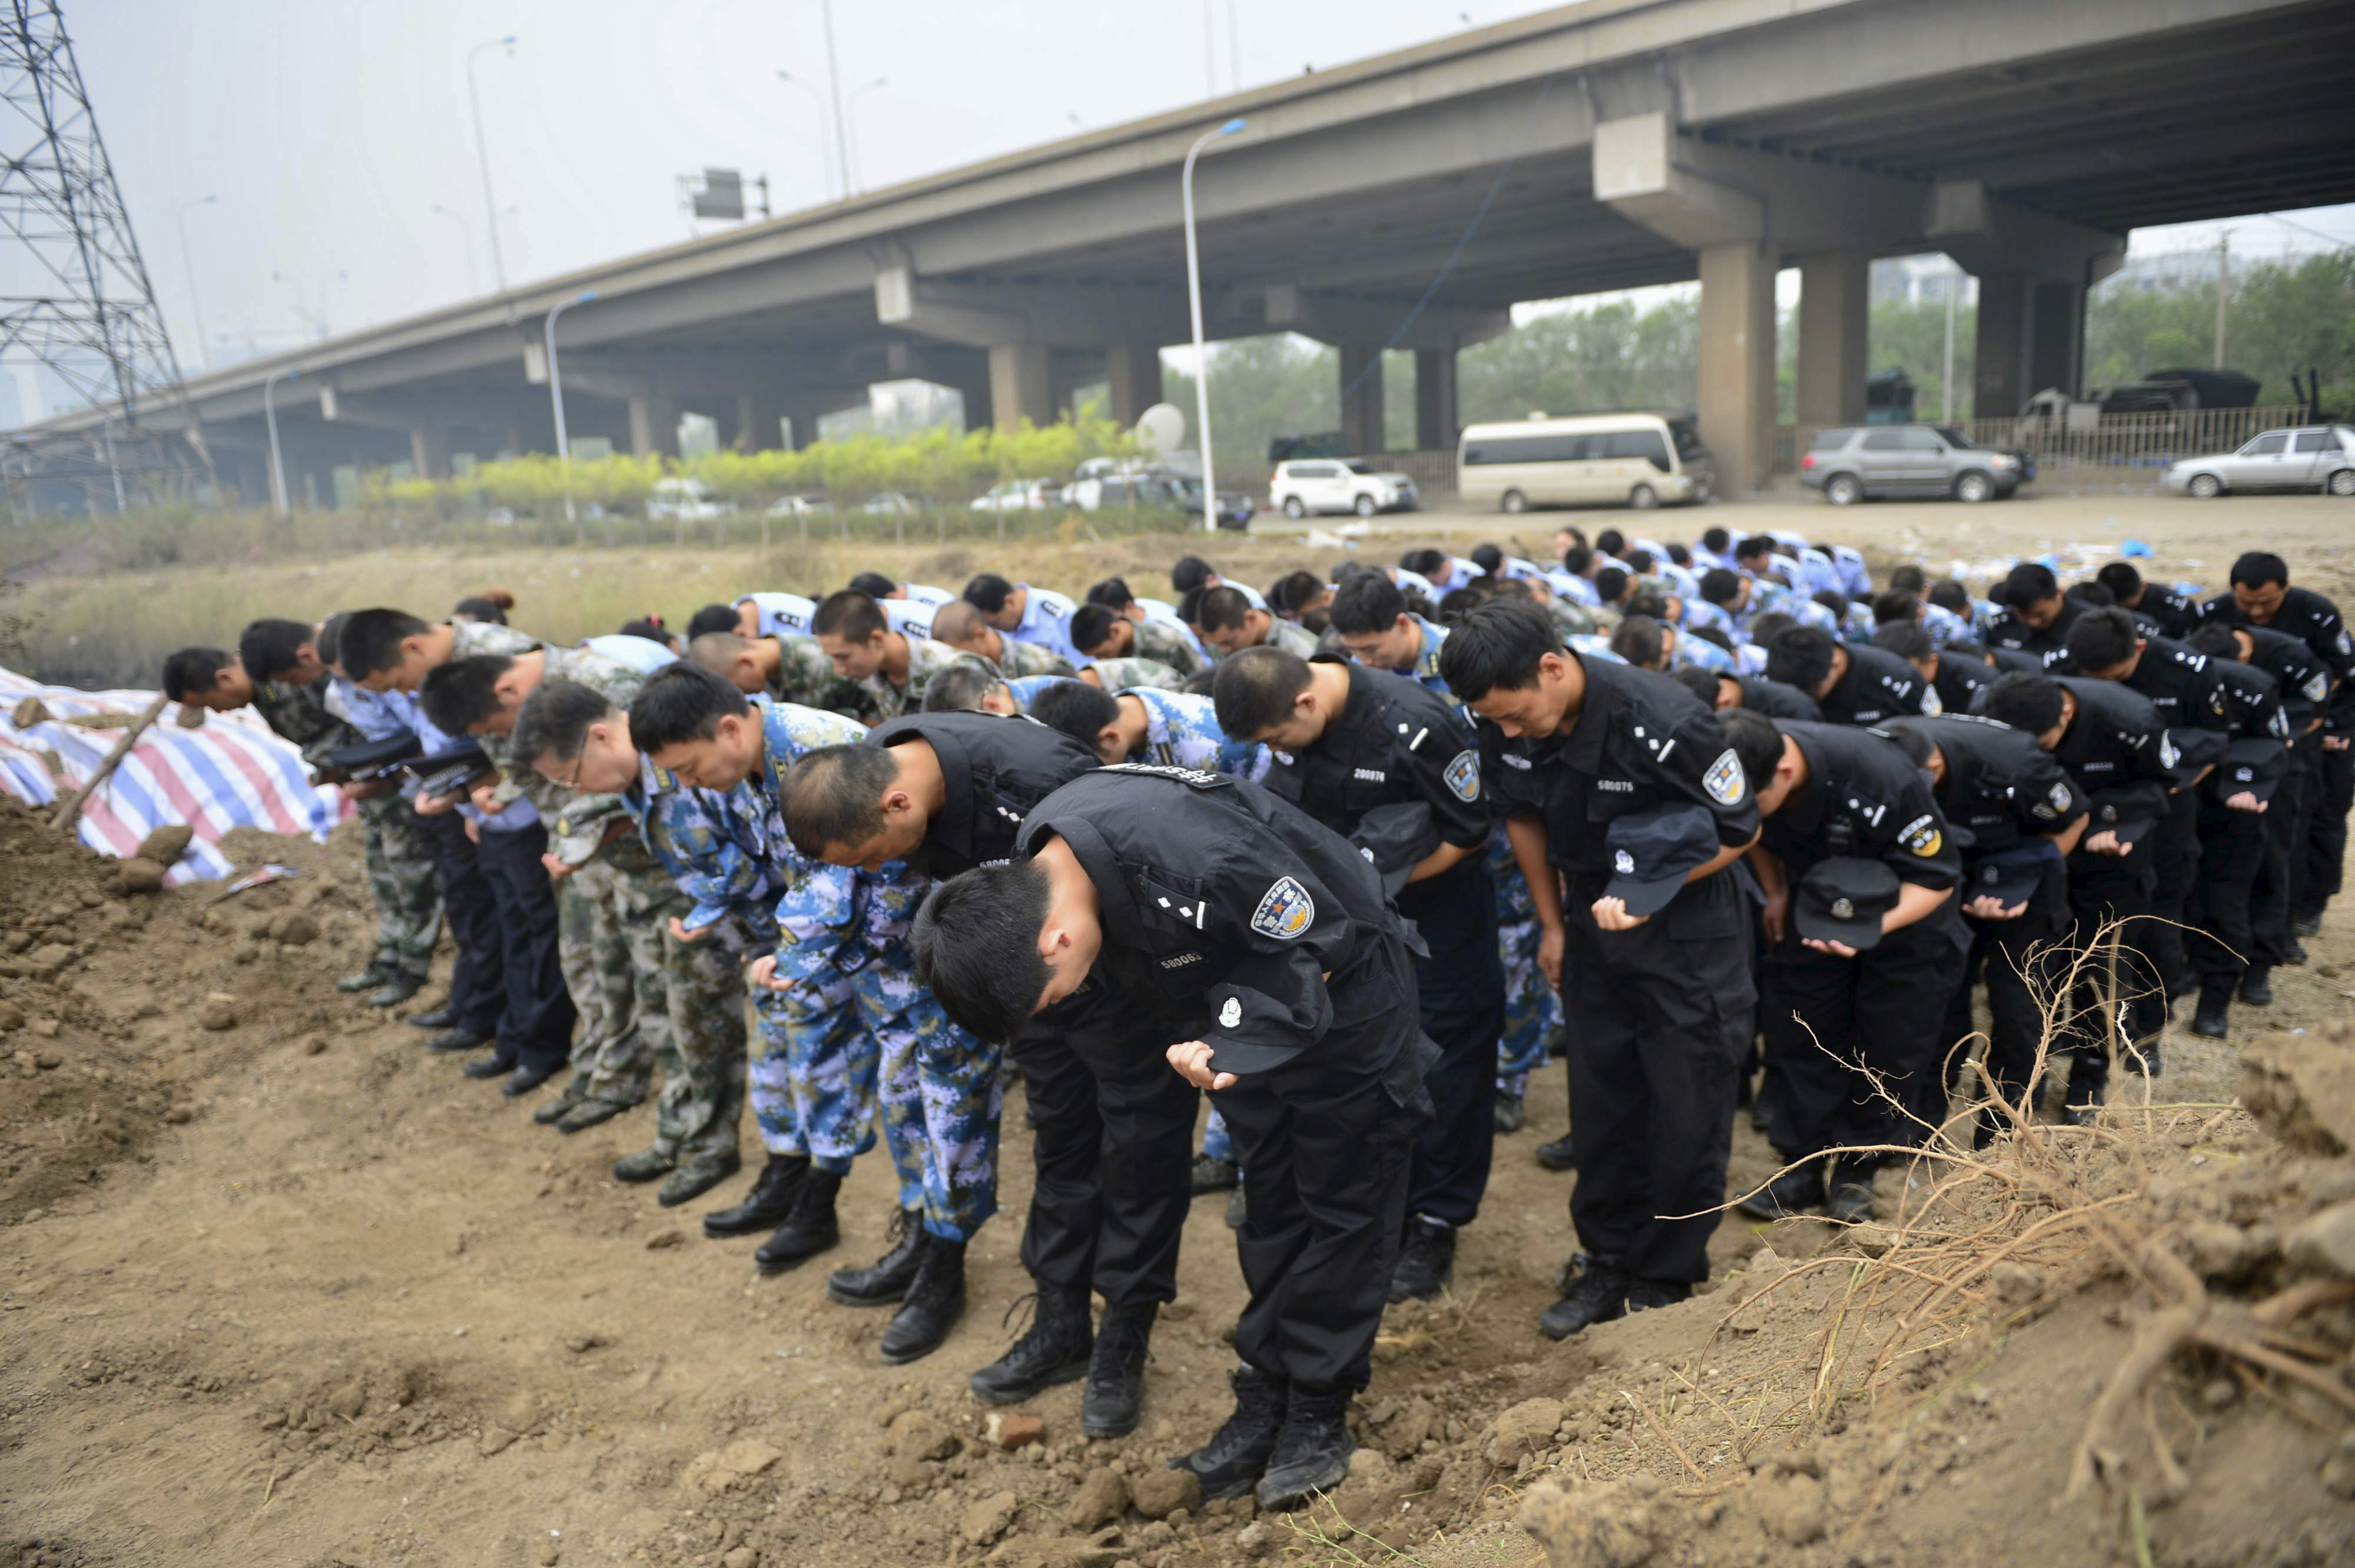 Representatives from the police and People's Liberation Army (PLA), marking the seventh day since the Tianjin explosions, pay tribute to the people who died, in a ceremony at Binhai new district, Tianjin, China, Aug. 18, 2015.